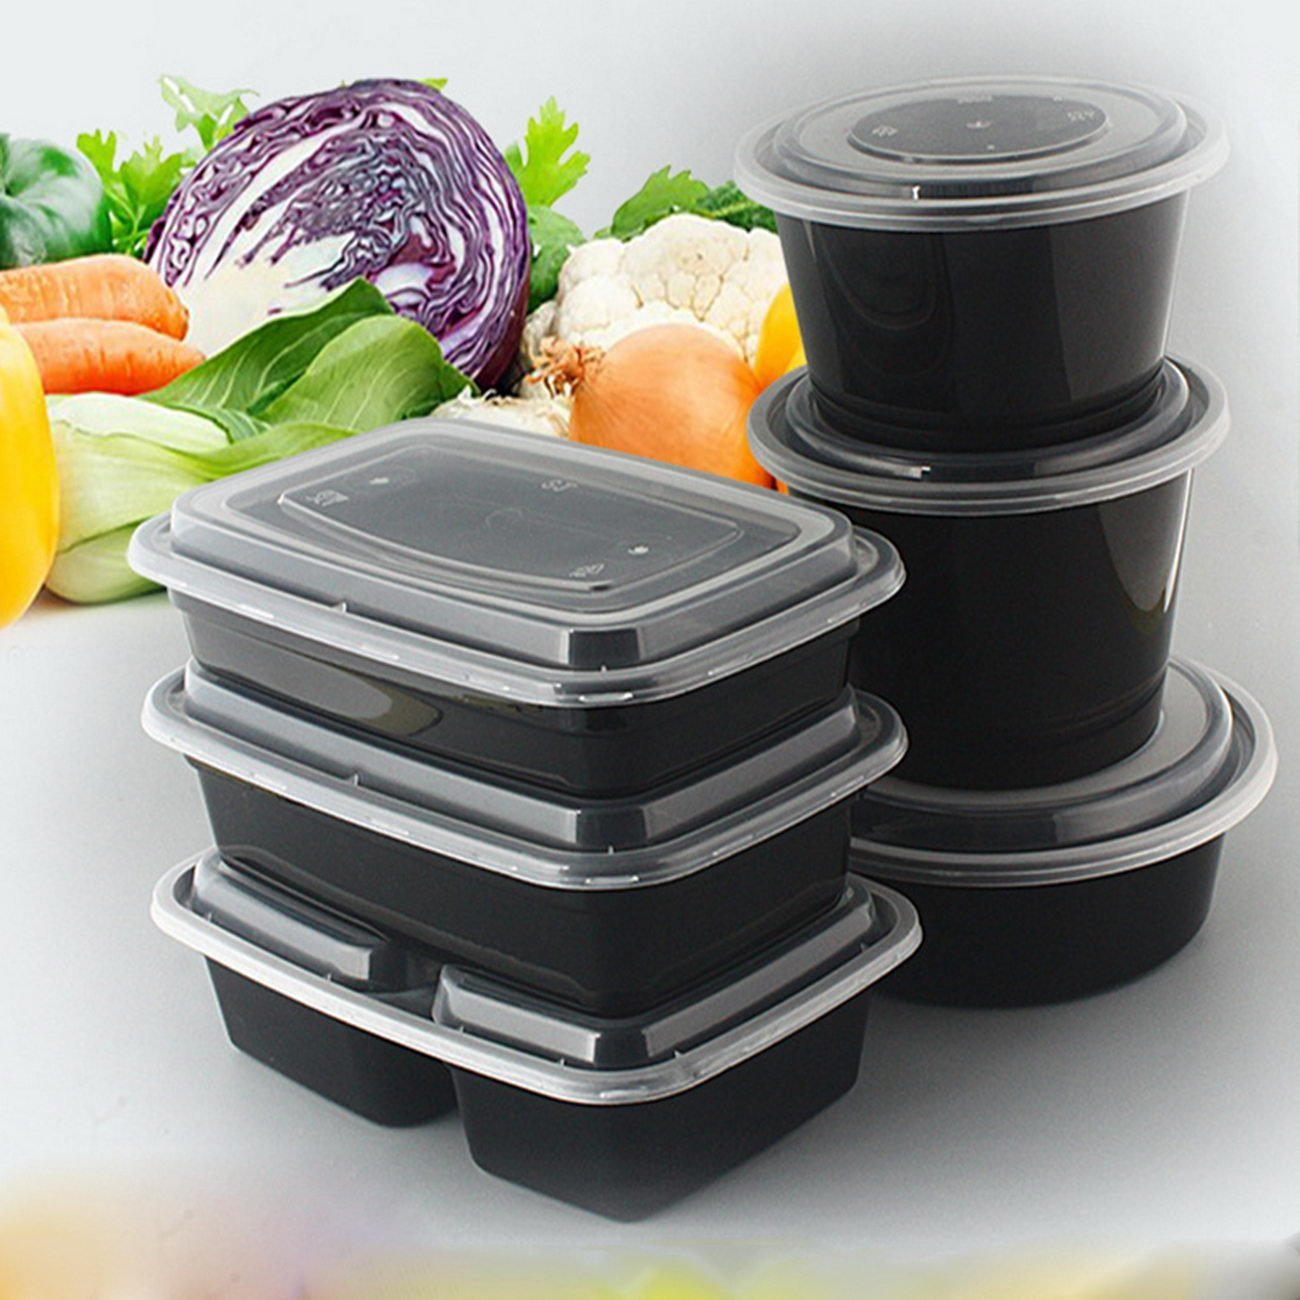 jii2030shann outside the double lunch boxes packing box round convex cover, lunch, outside packing boxes, lunch boxes, double outer packing box , lunch